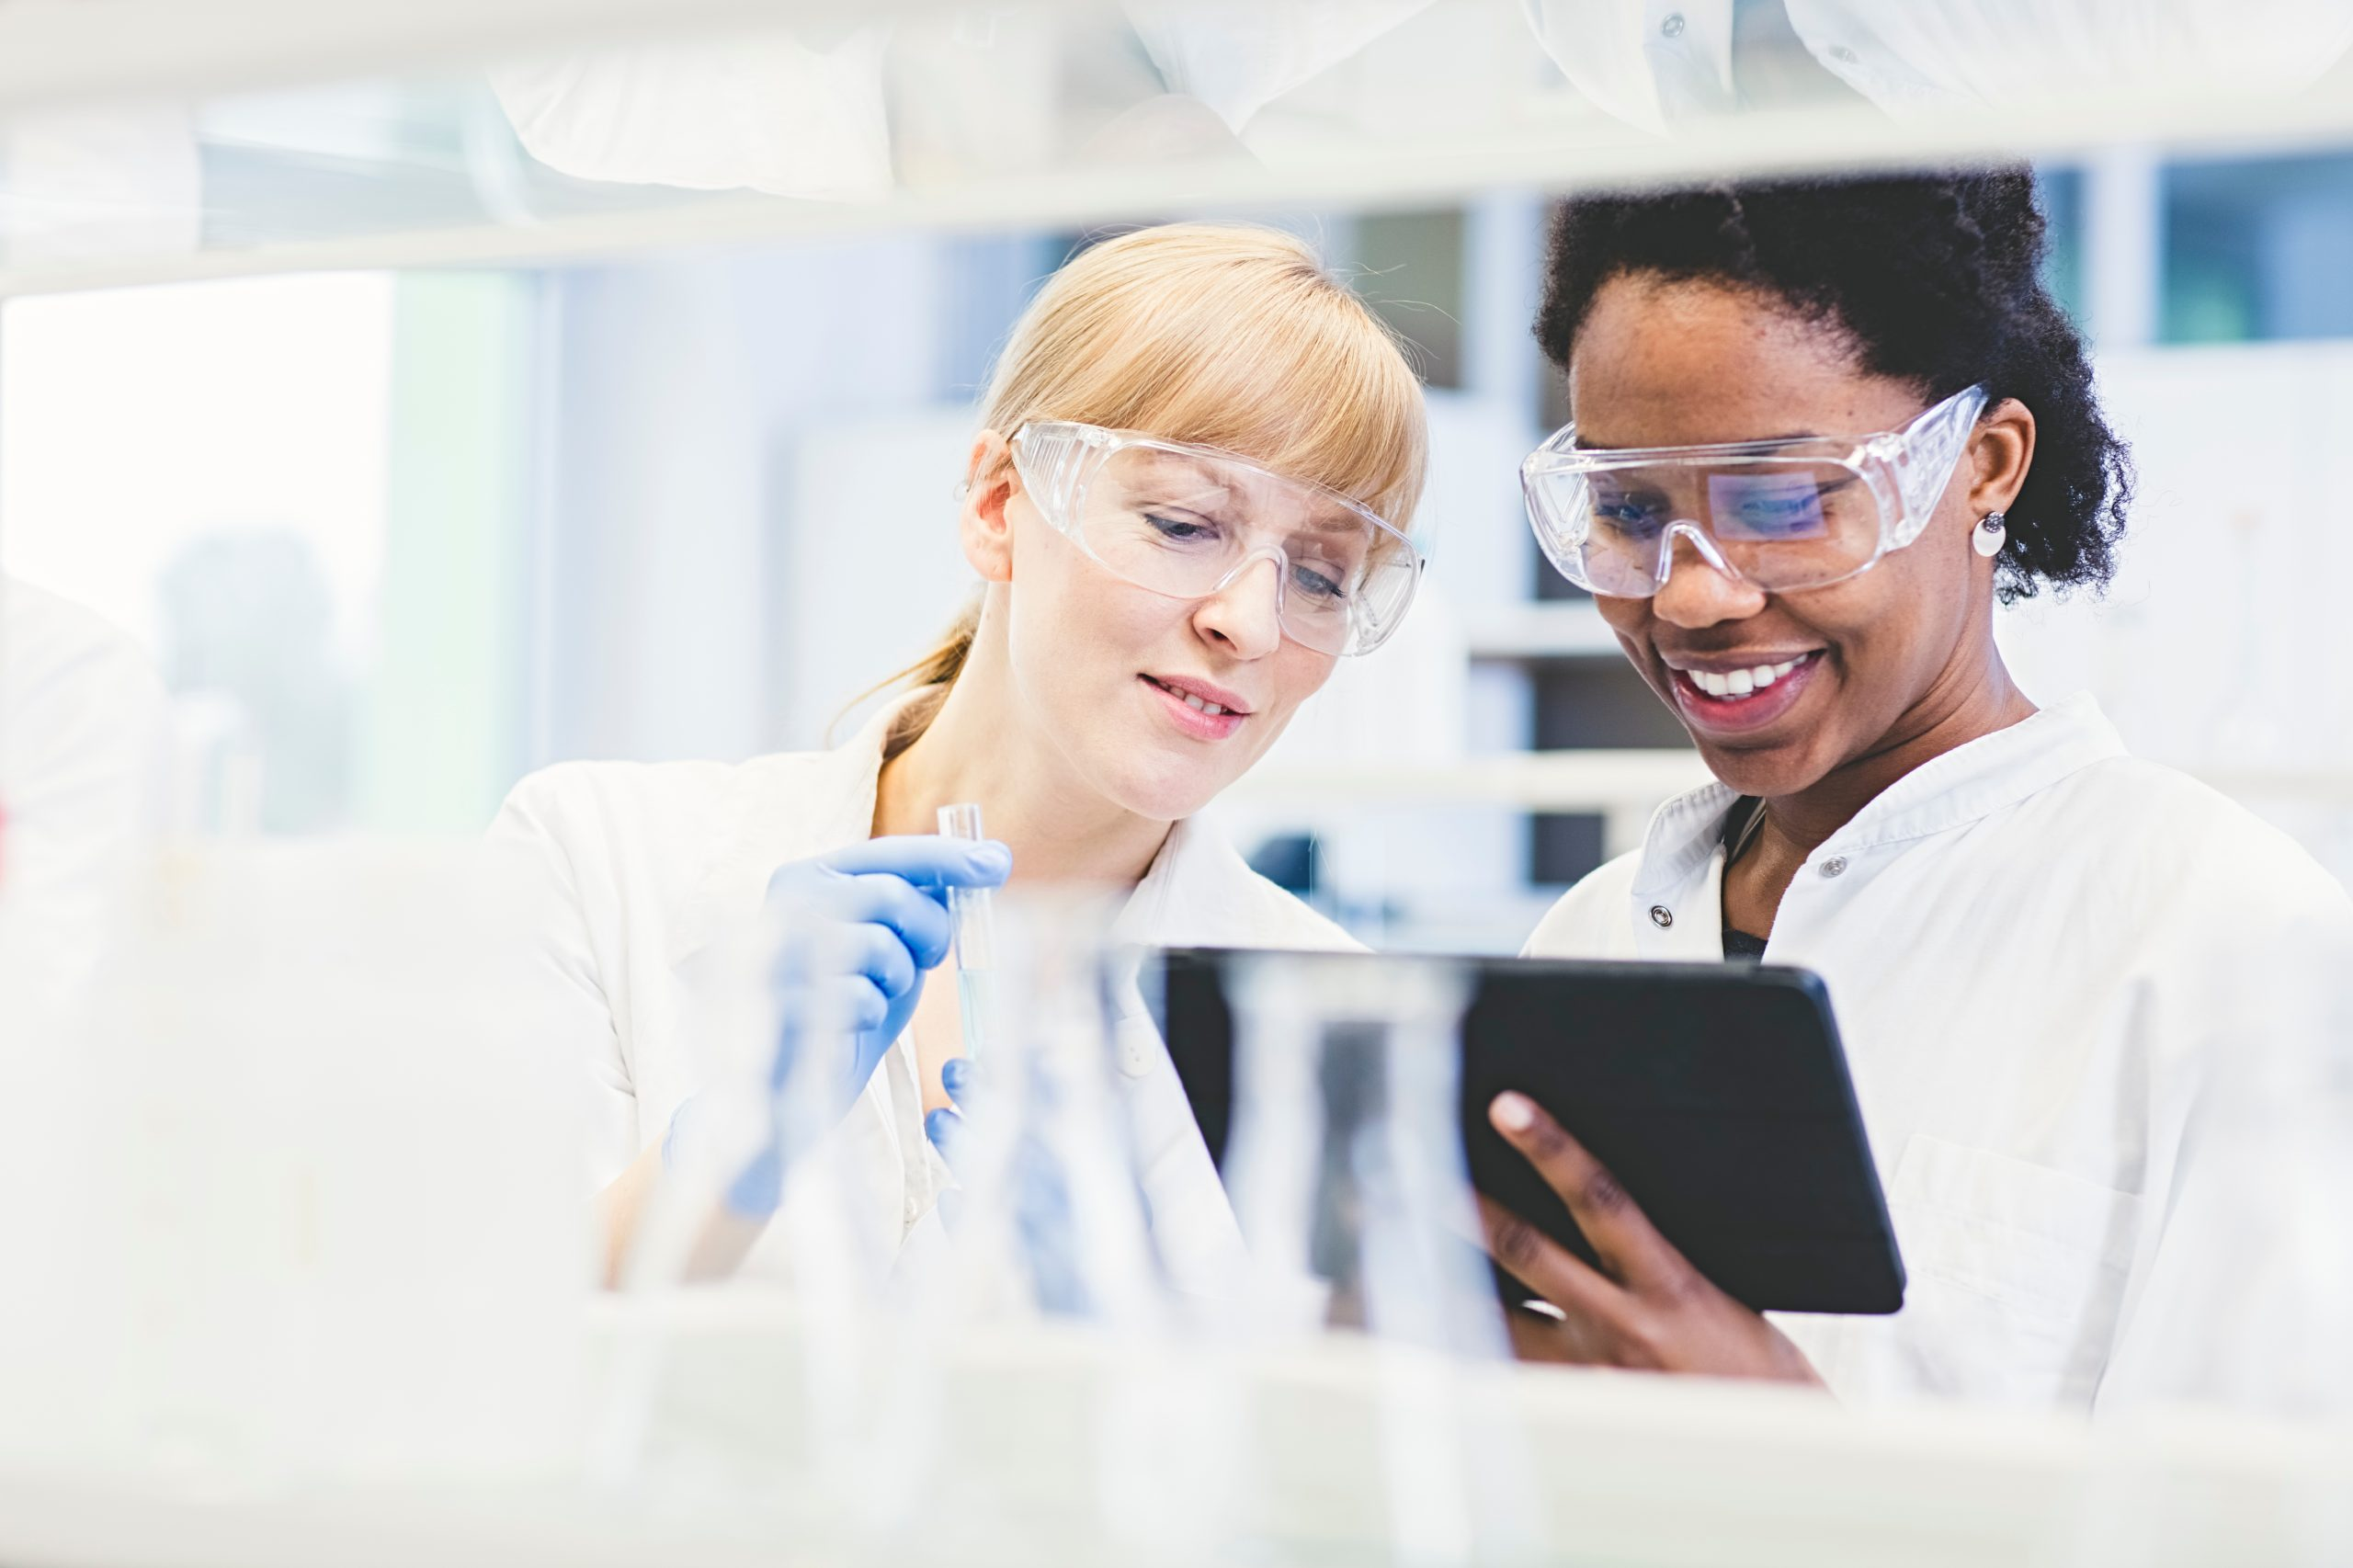 Two smiling female scientists in a lab observing a tablet